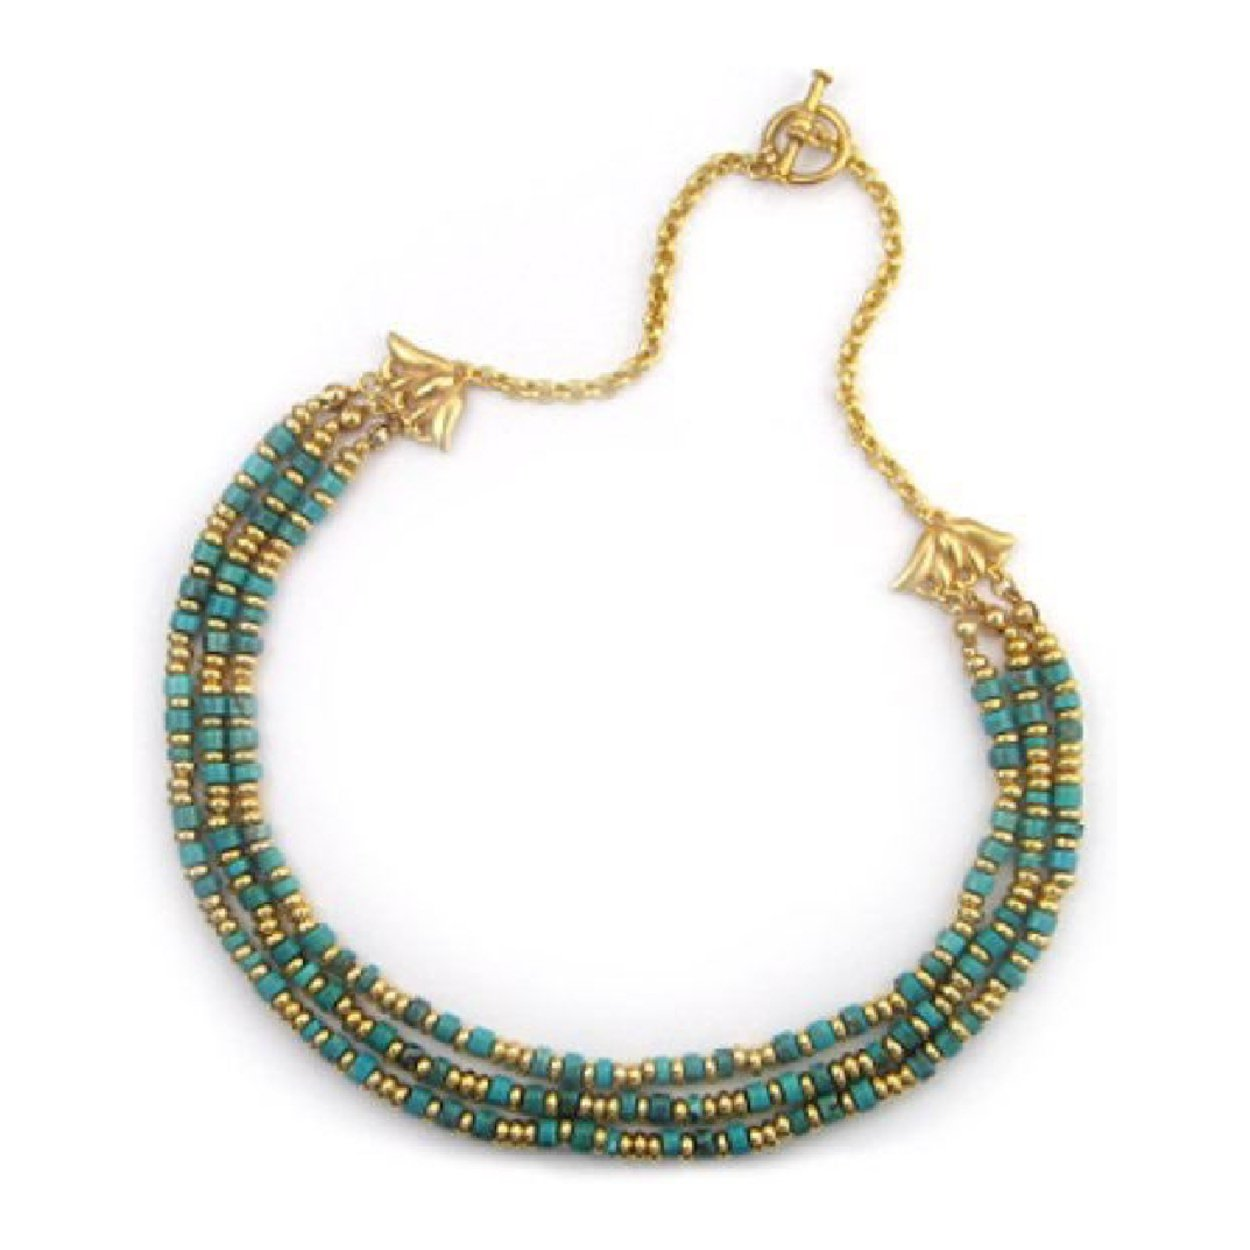 Egyptian Royal Collar Blue Turquoise Lotus Toggle Necklace, 16'' Museum Collection, Handmade USA